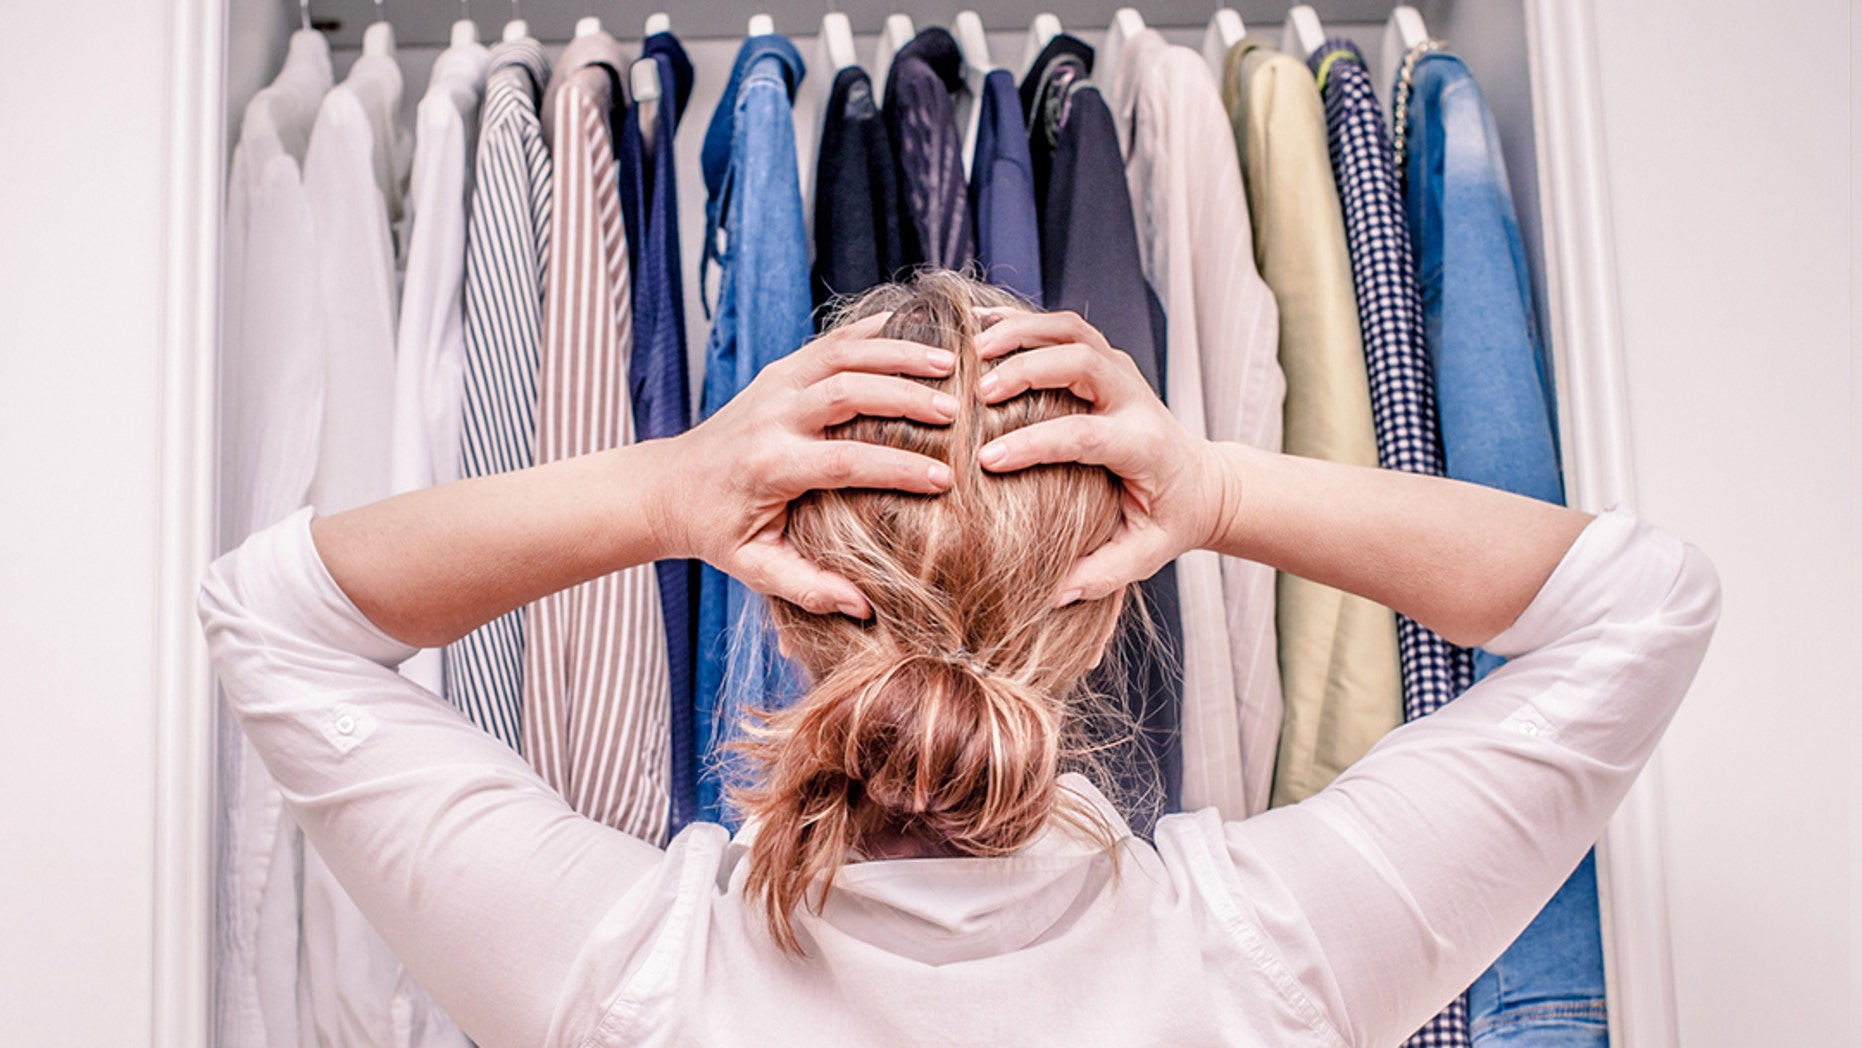 Choosing an outfit for a first date can be as nerve-wracking as the date itself.